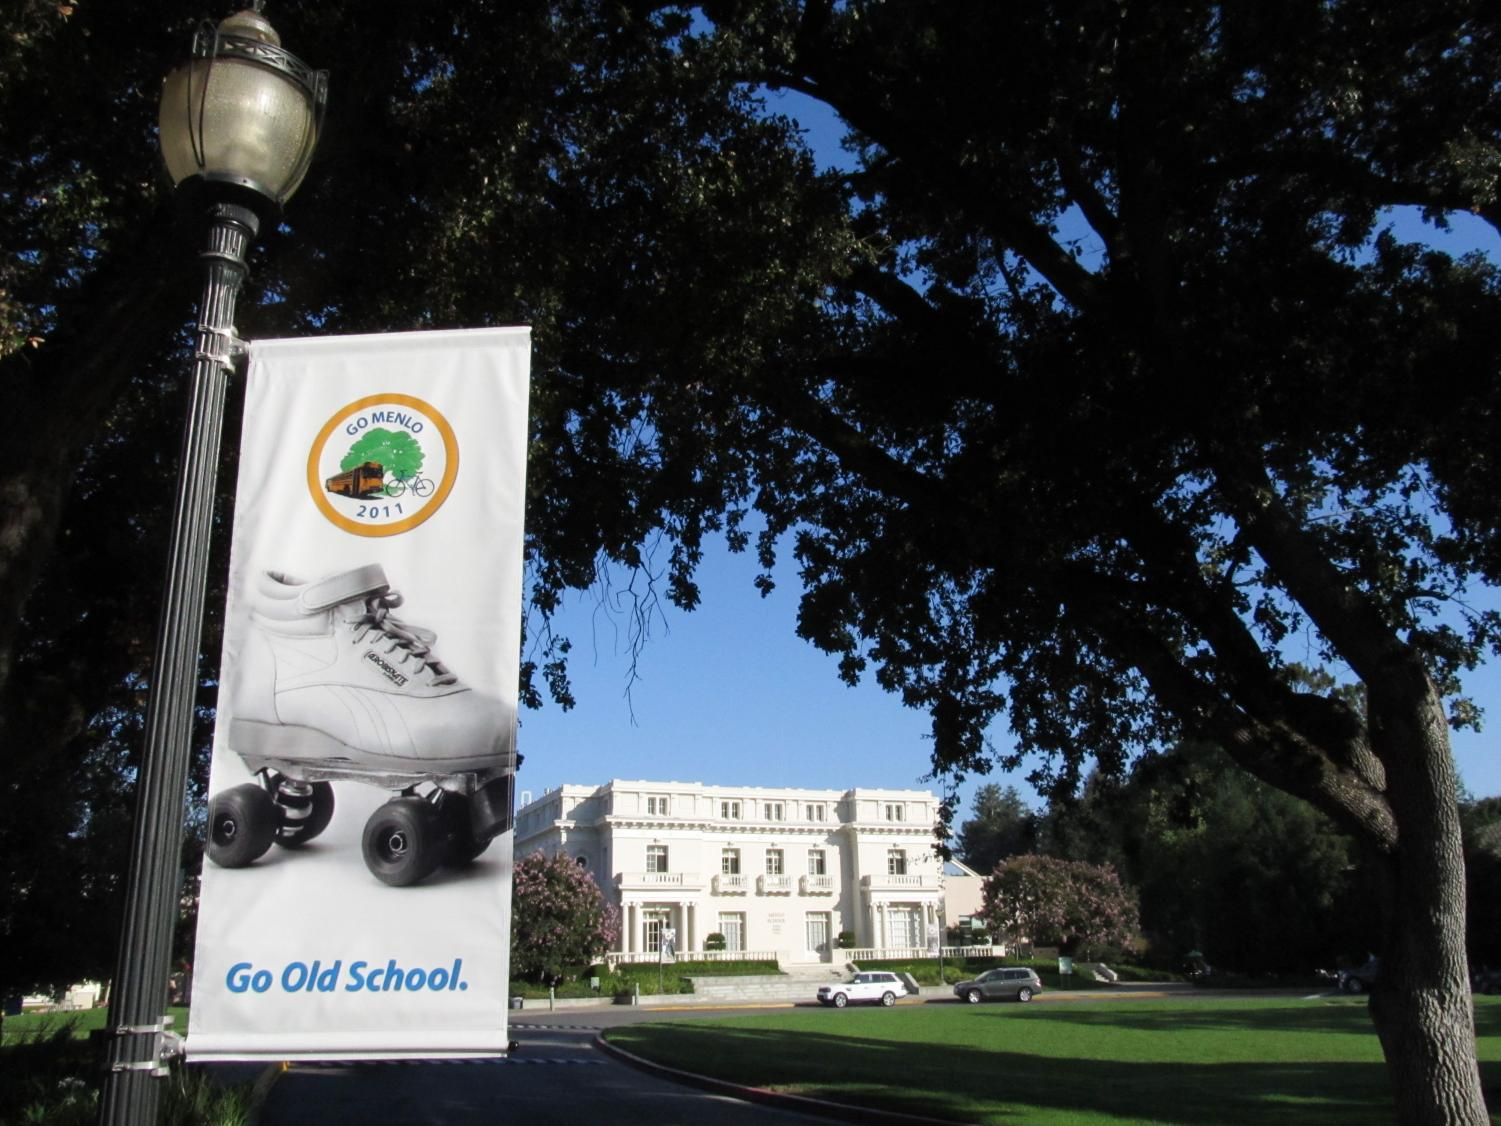 A poster hangs at the entrance to Menlo School in 2011, promoting the then-newly-founded GO MENLO program. GO MENLO promotes ways to reduce the number of drivers on Menlo's campus, such as roller skating or taking the bus. Photo courtesy of Pete Zivkov.